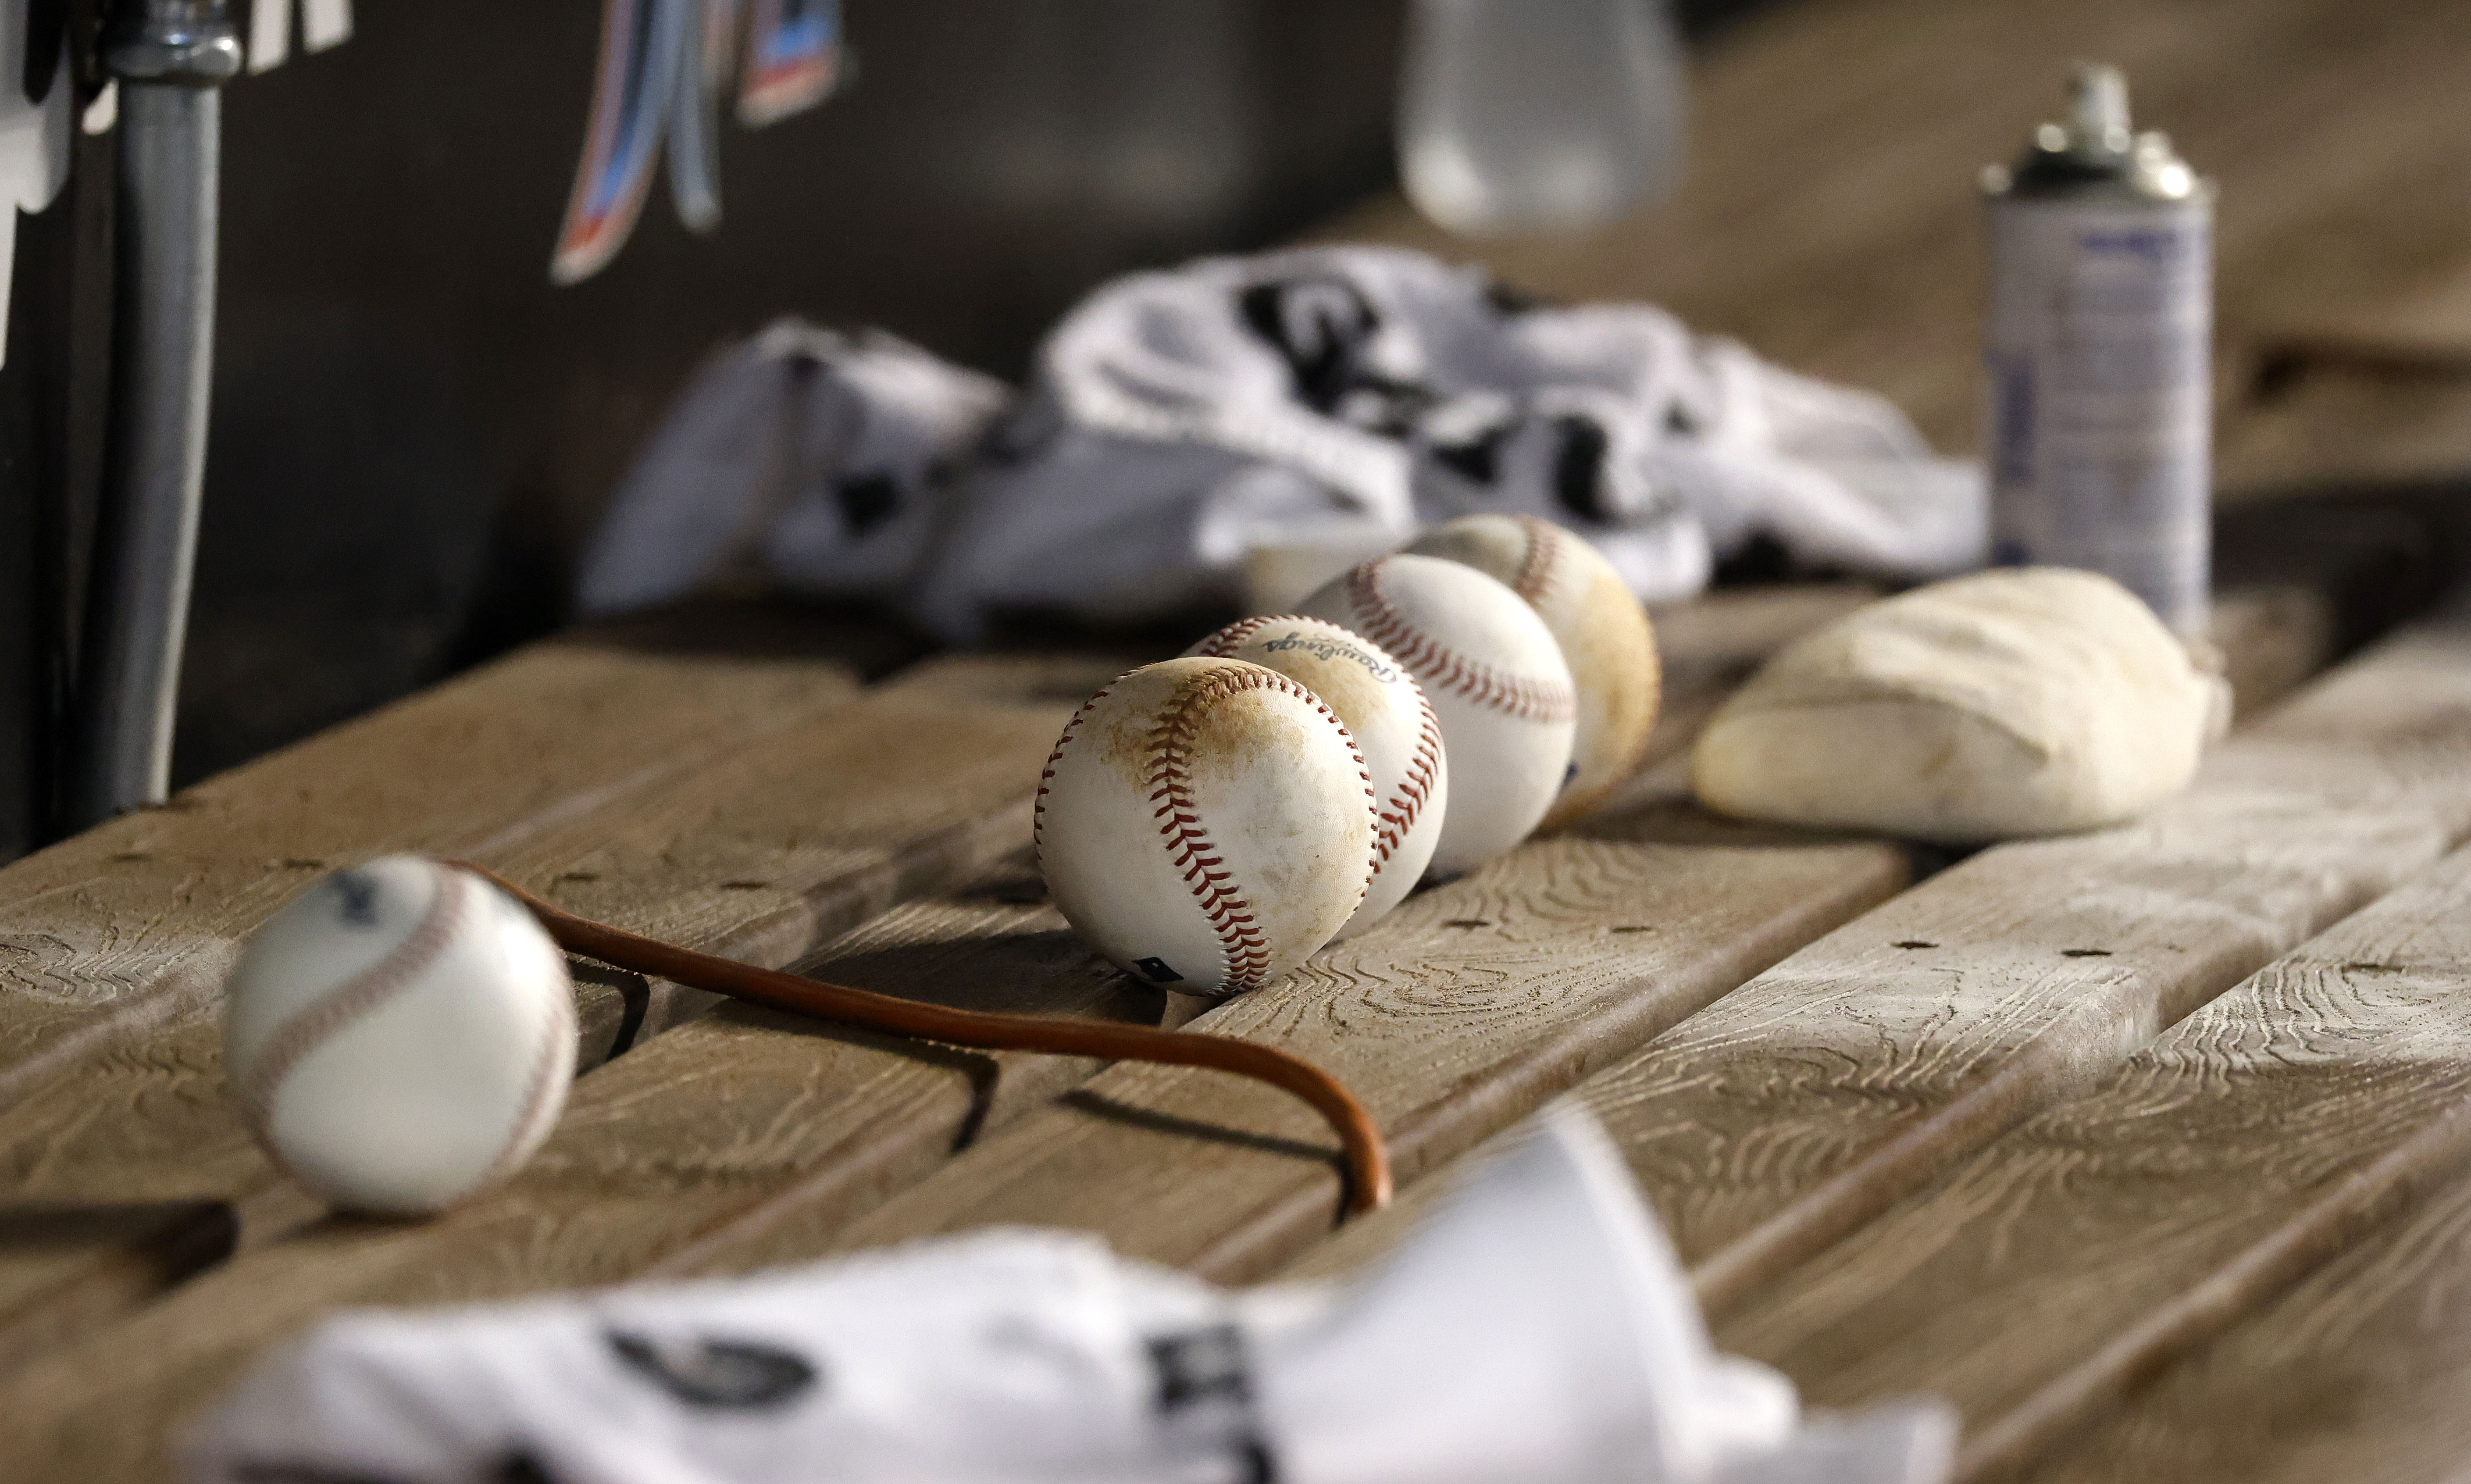 Baseballs sit in the Washington Nationals dugout during the fifth inning against the Miami Marlins at loanDepot Park